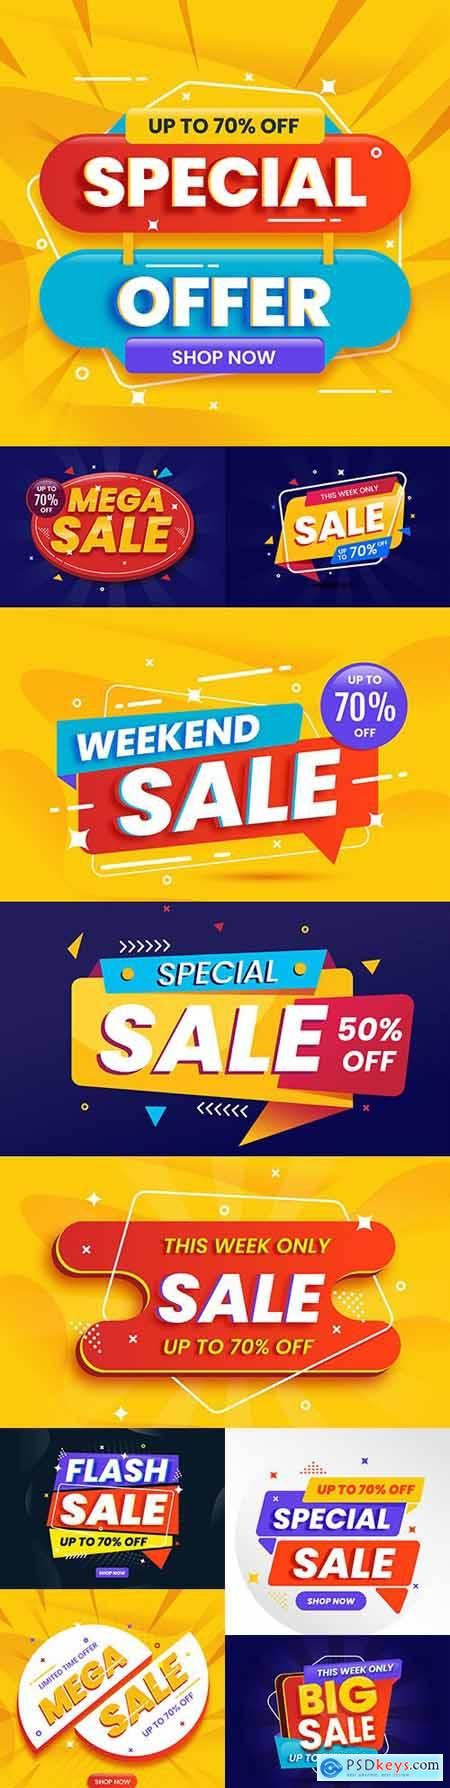 Sale and special offer banner template design